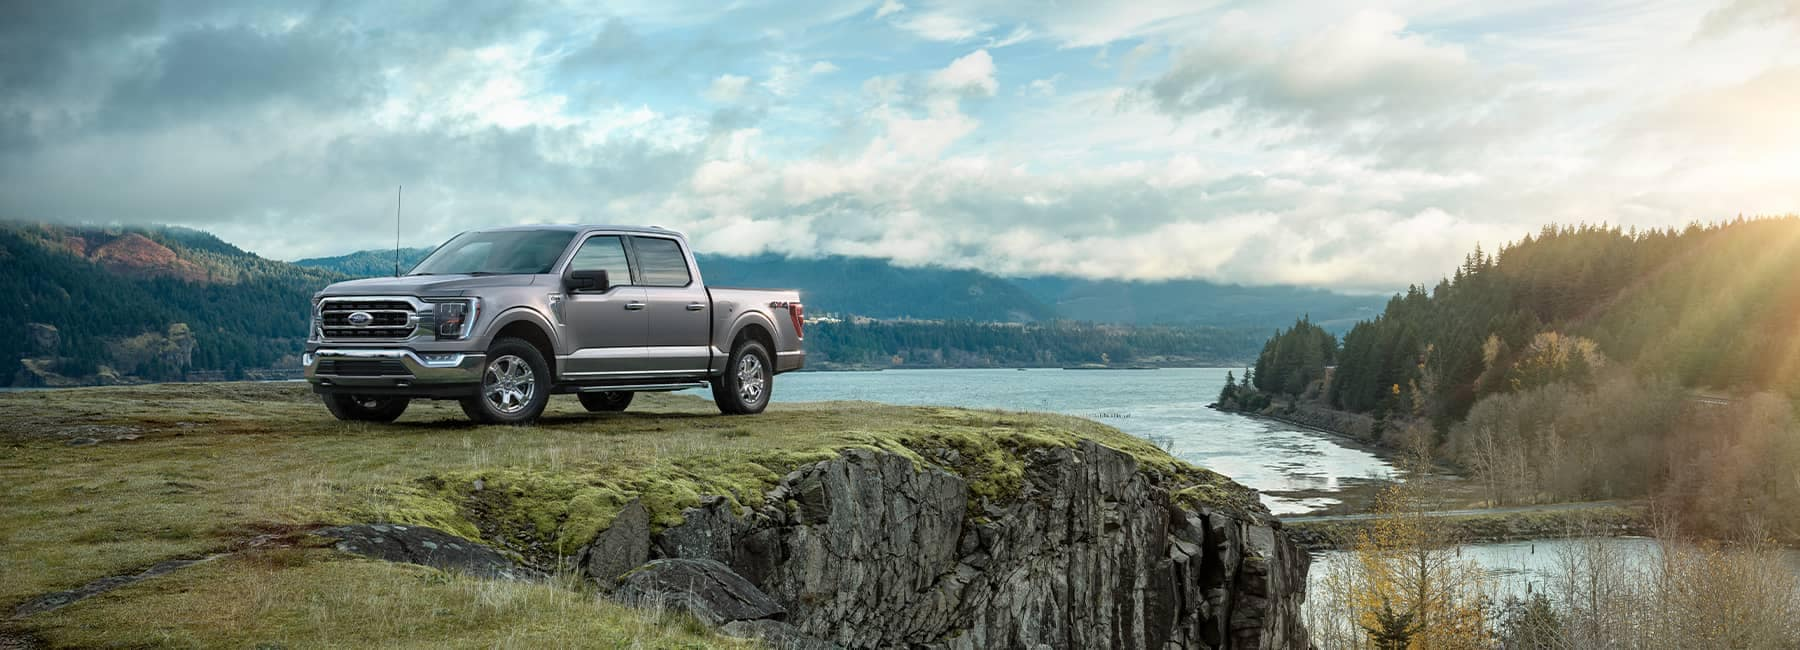 Silver 2021 Ford F-150 parked on a cliff overlooking a river